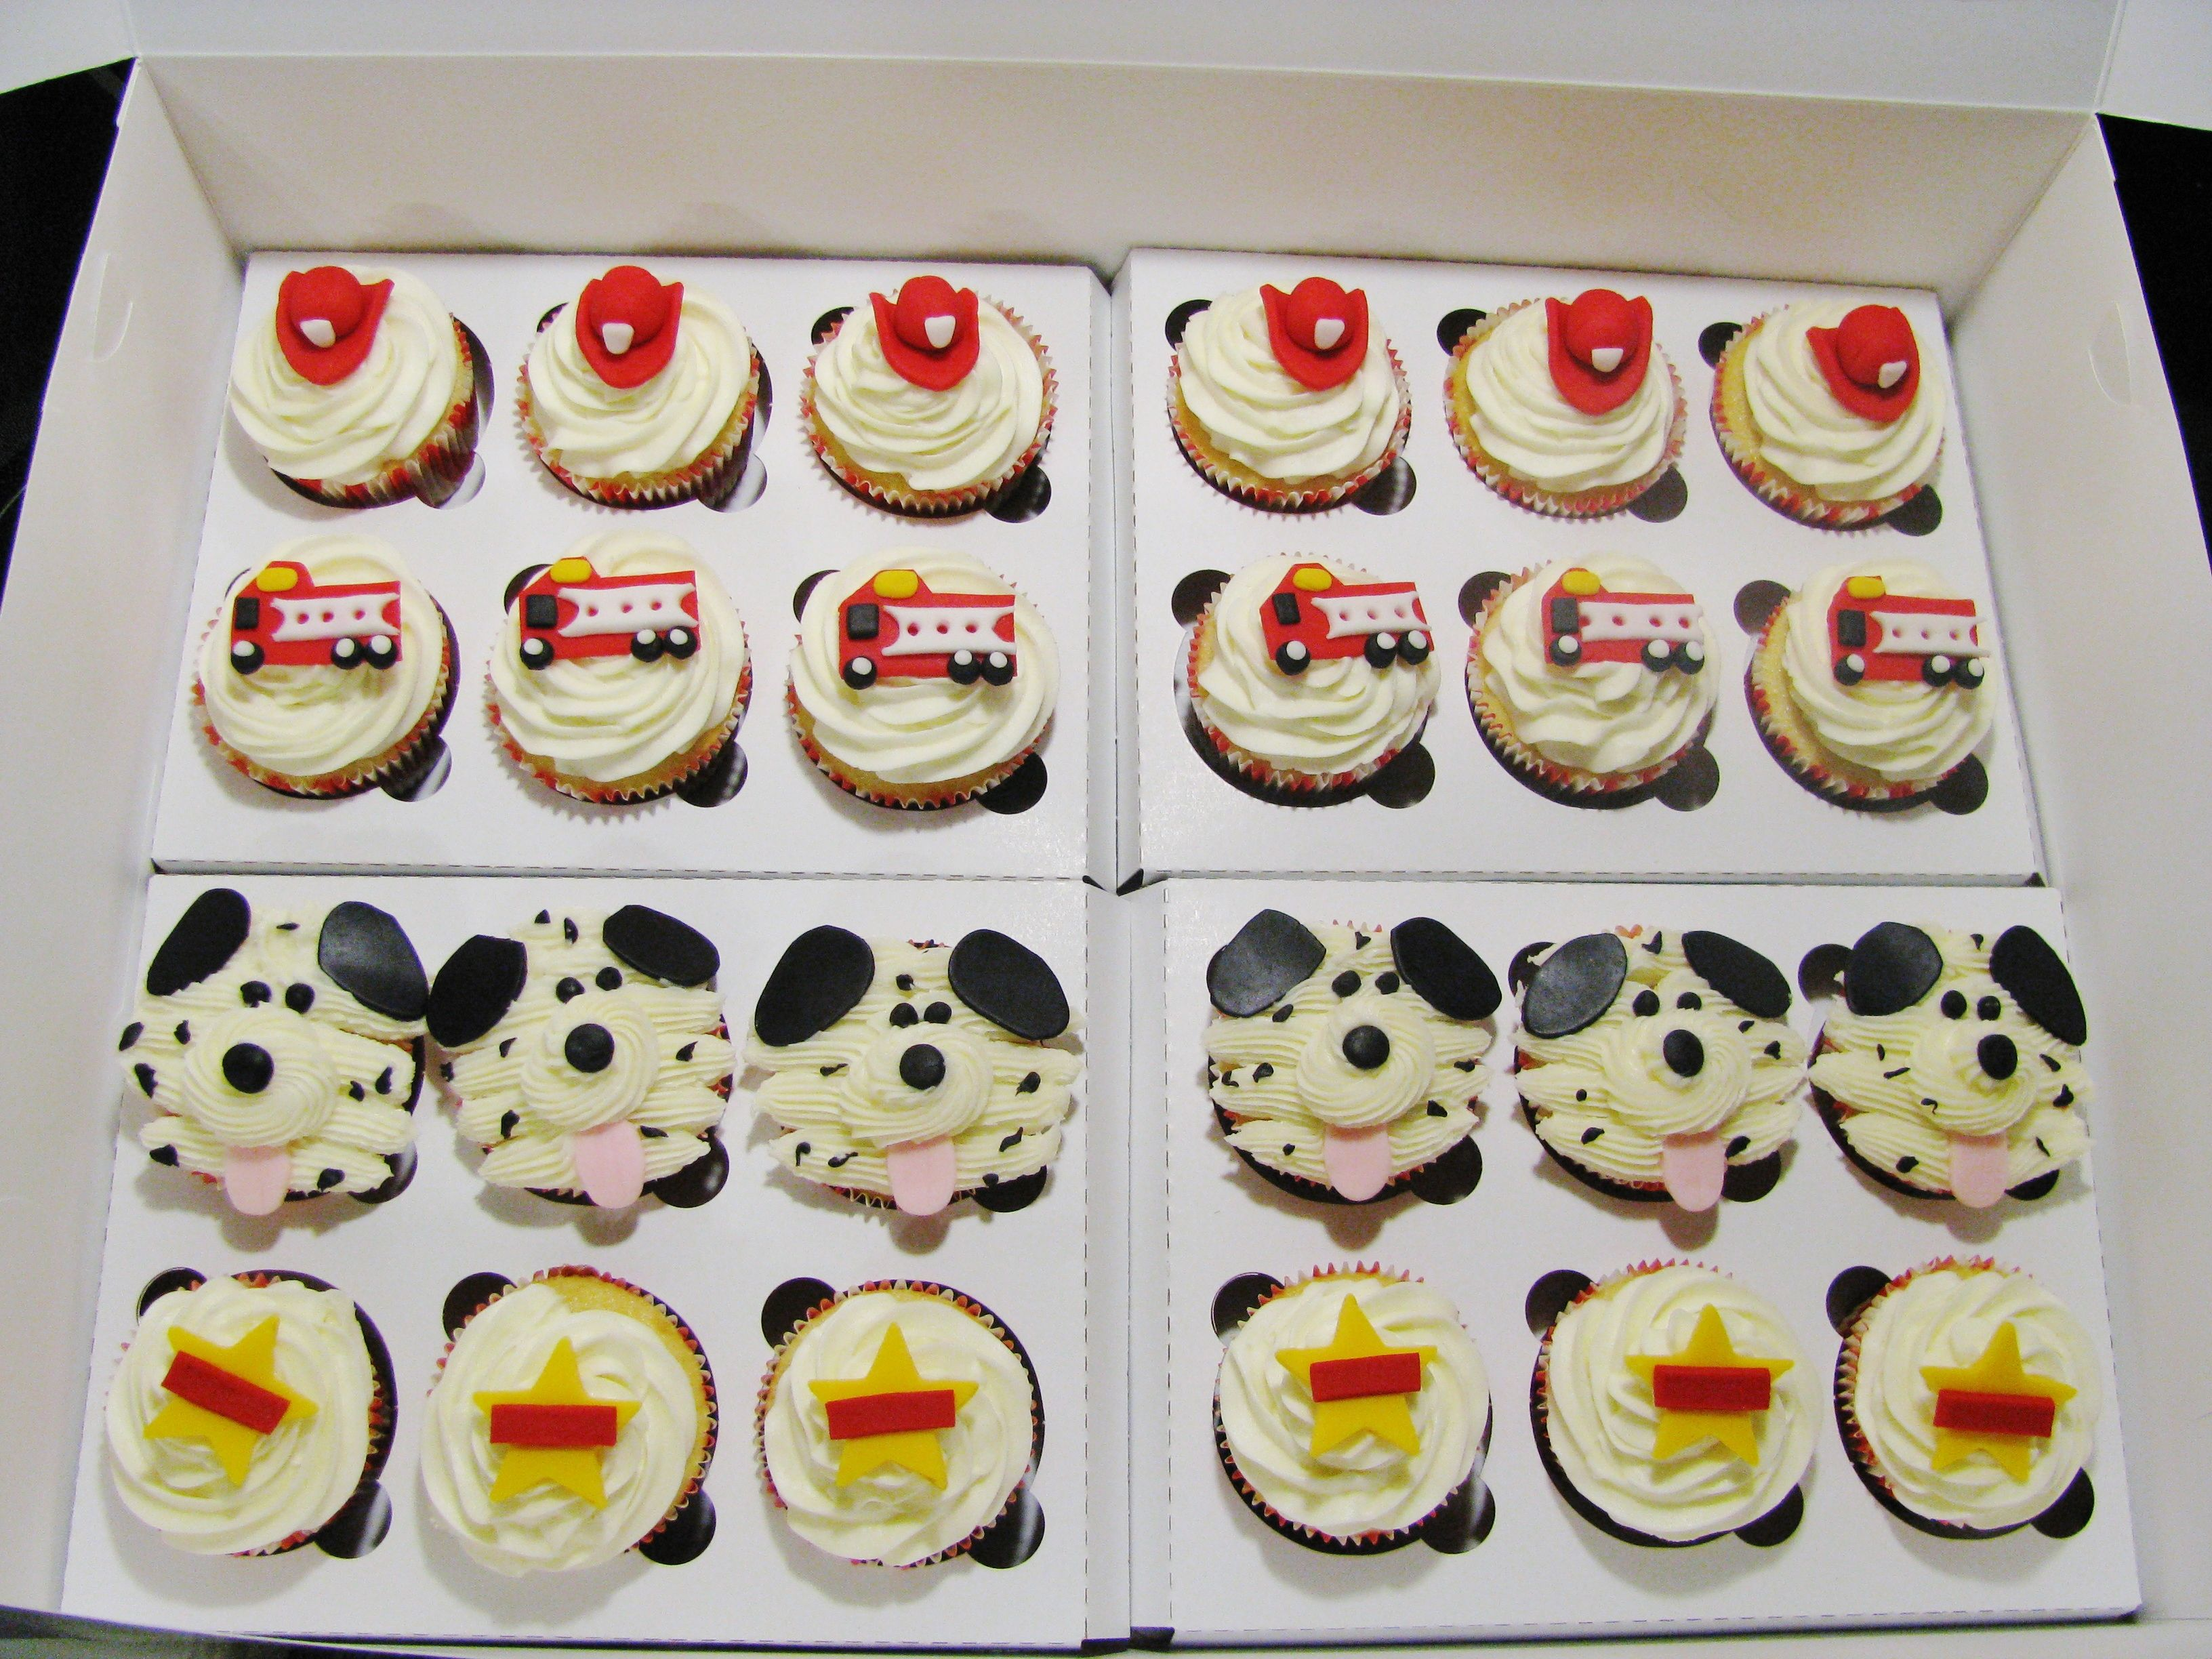 Fire truck cuppies!